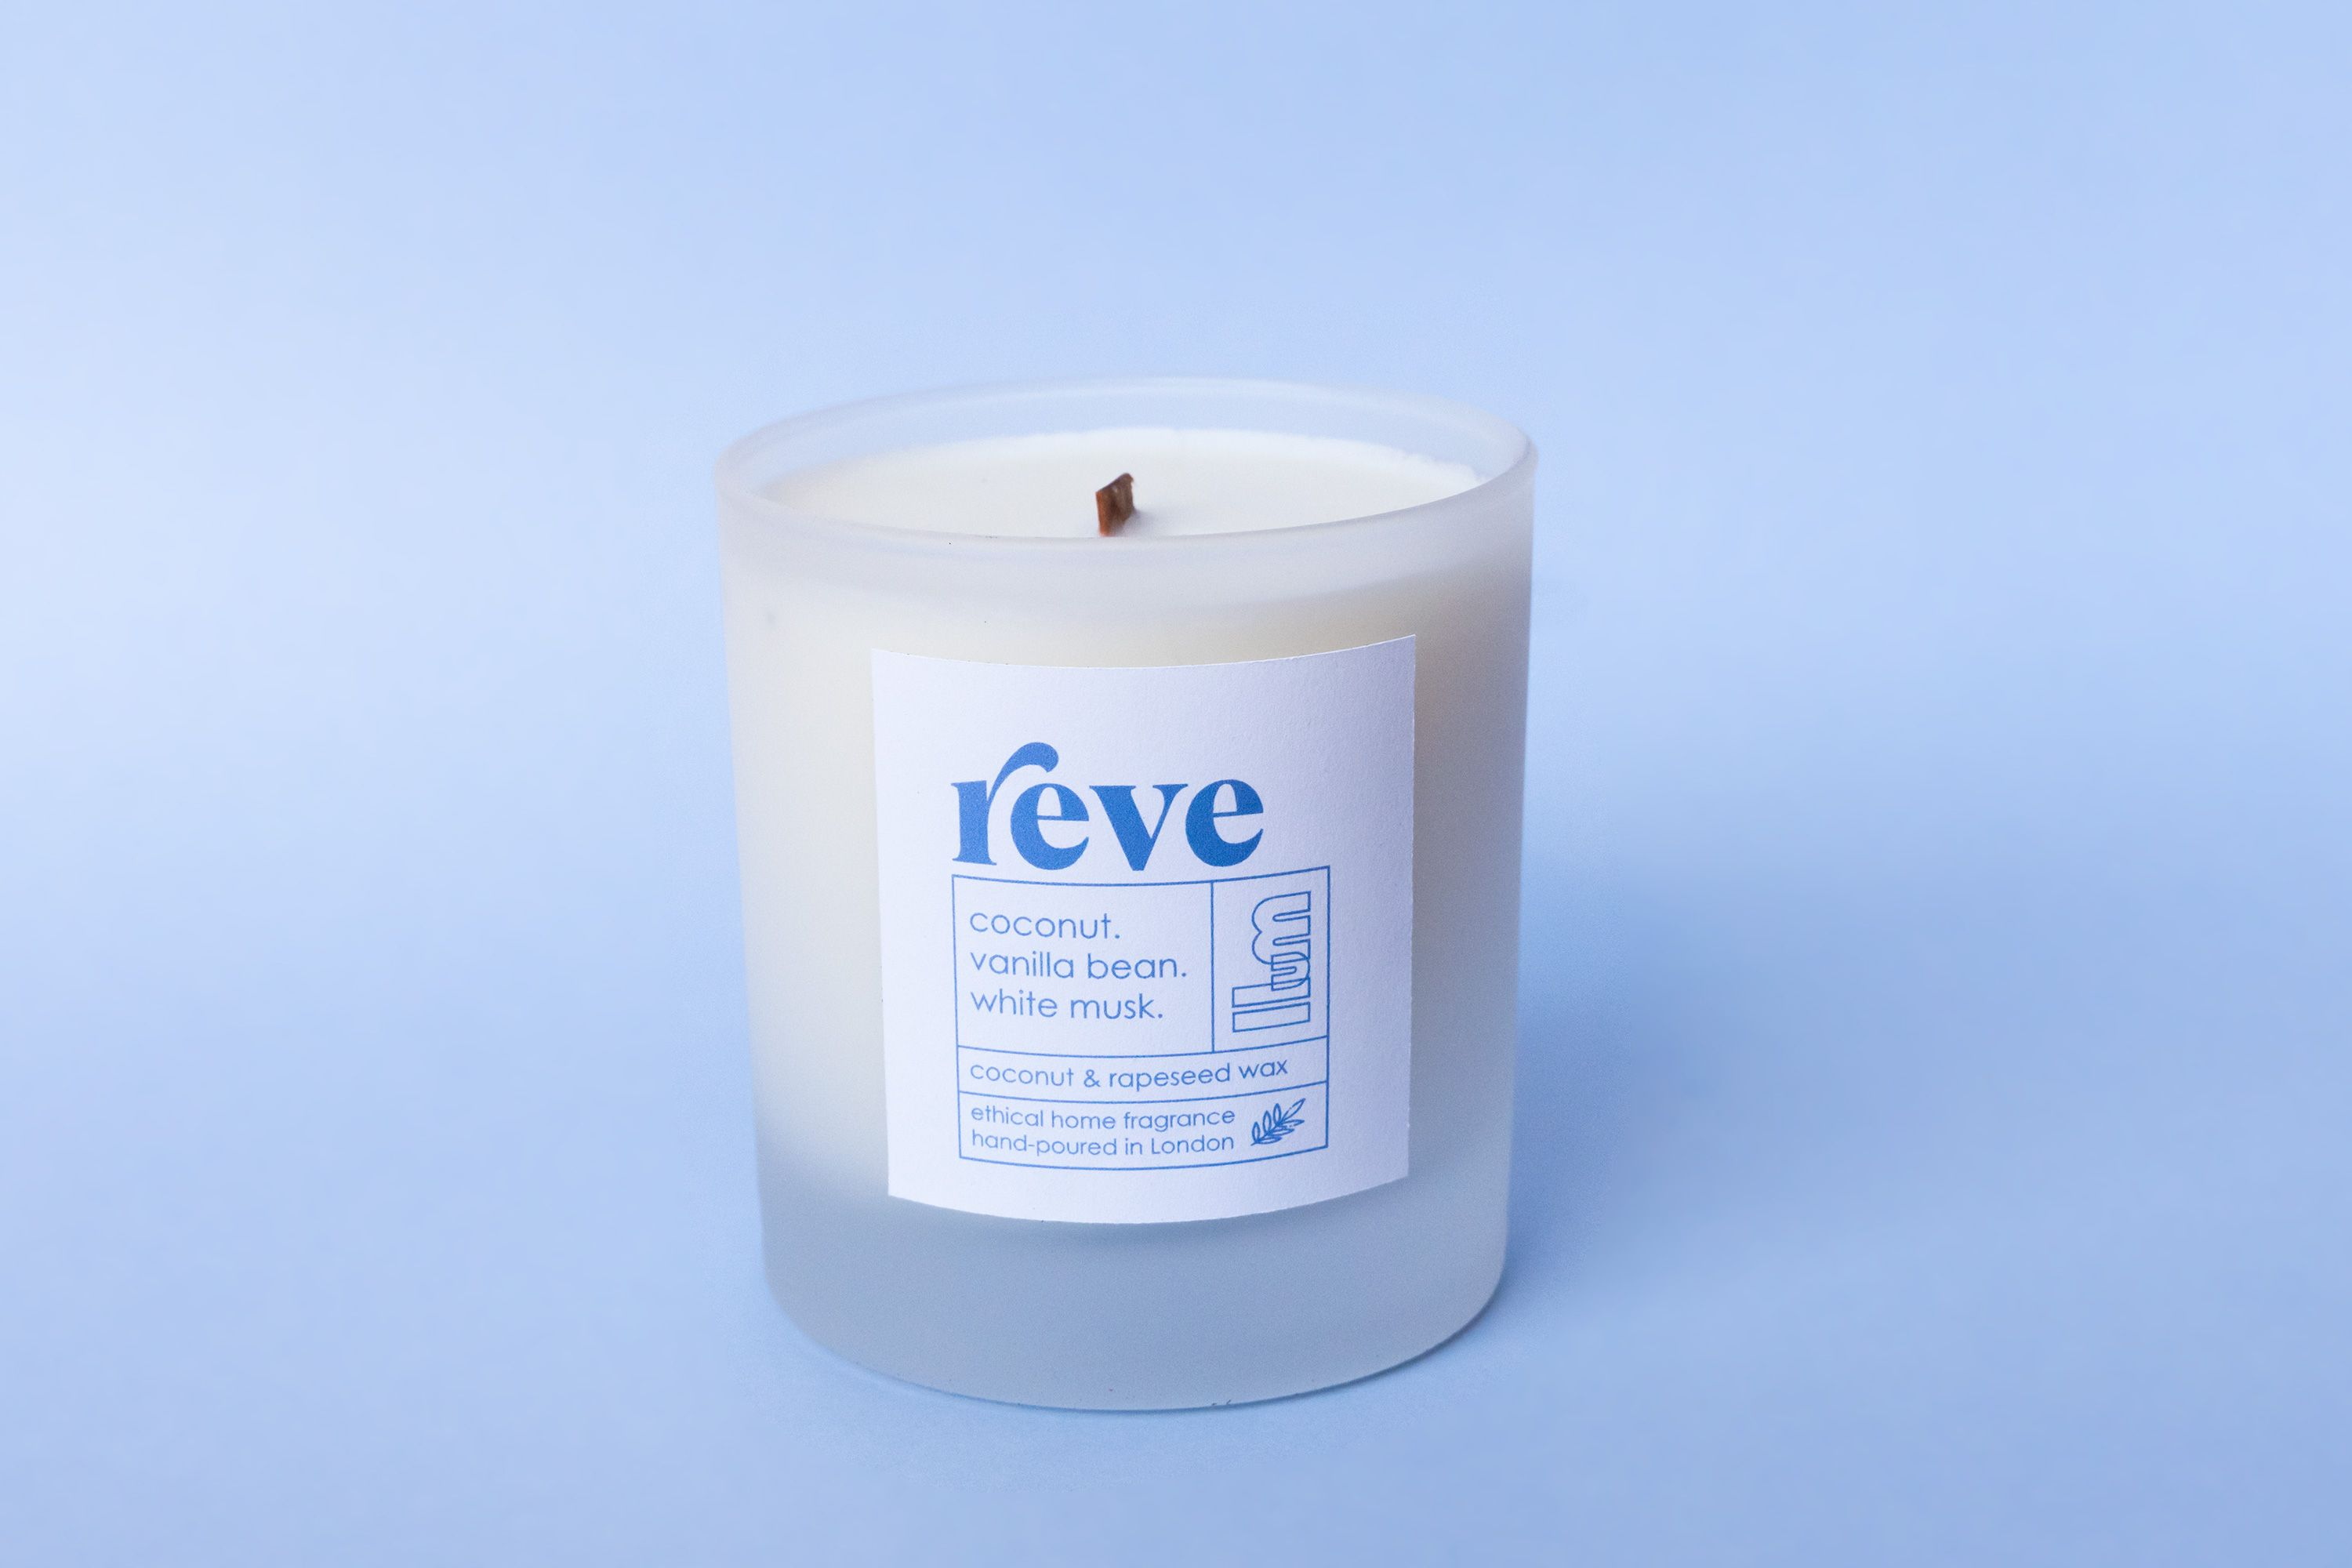 REVE Vegan Scented Candle - Coconut and Rapeseed Wax